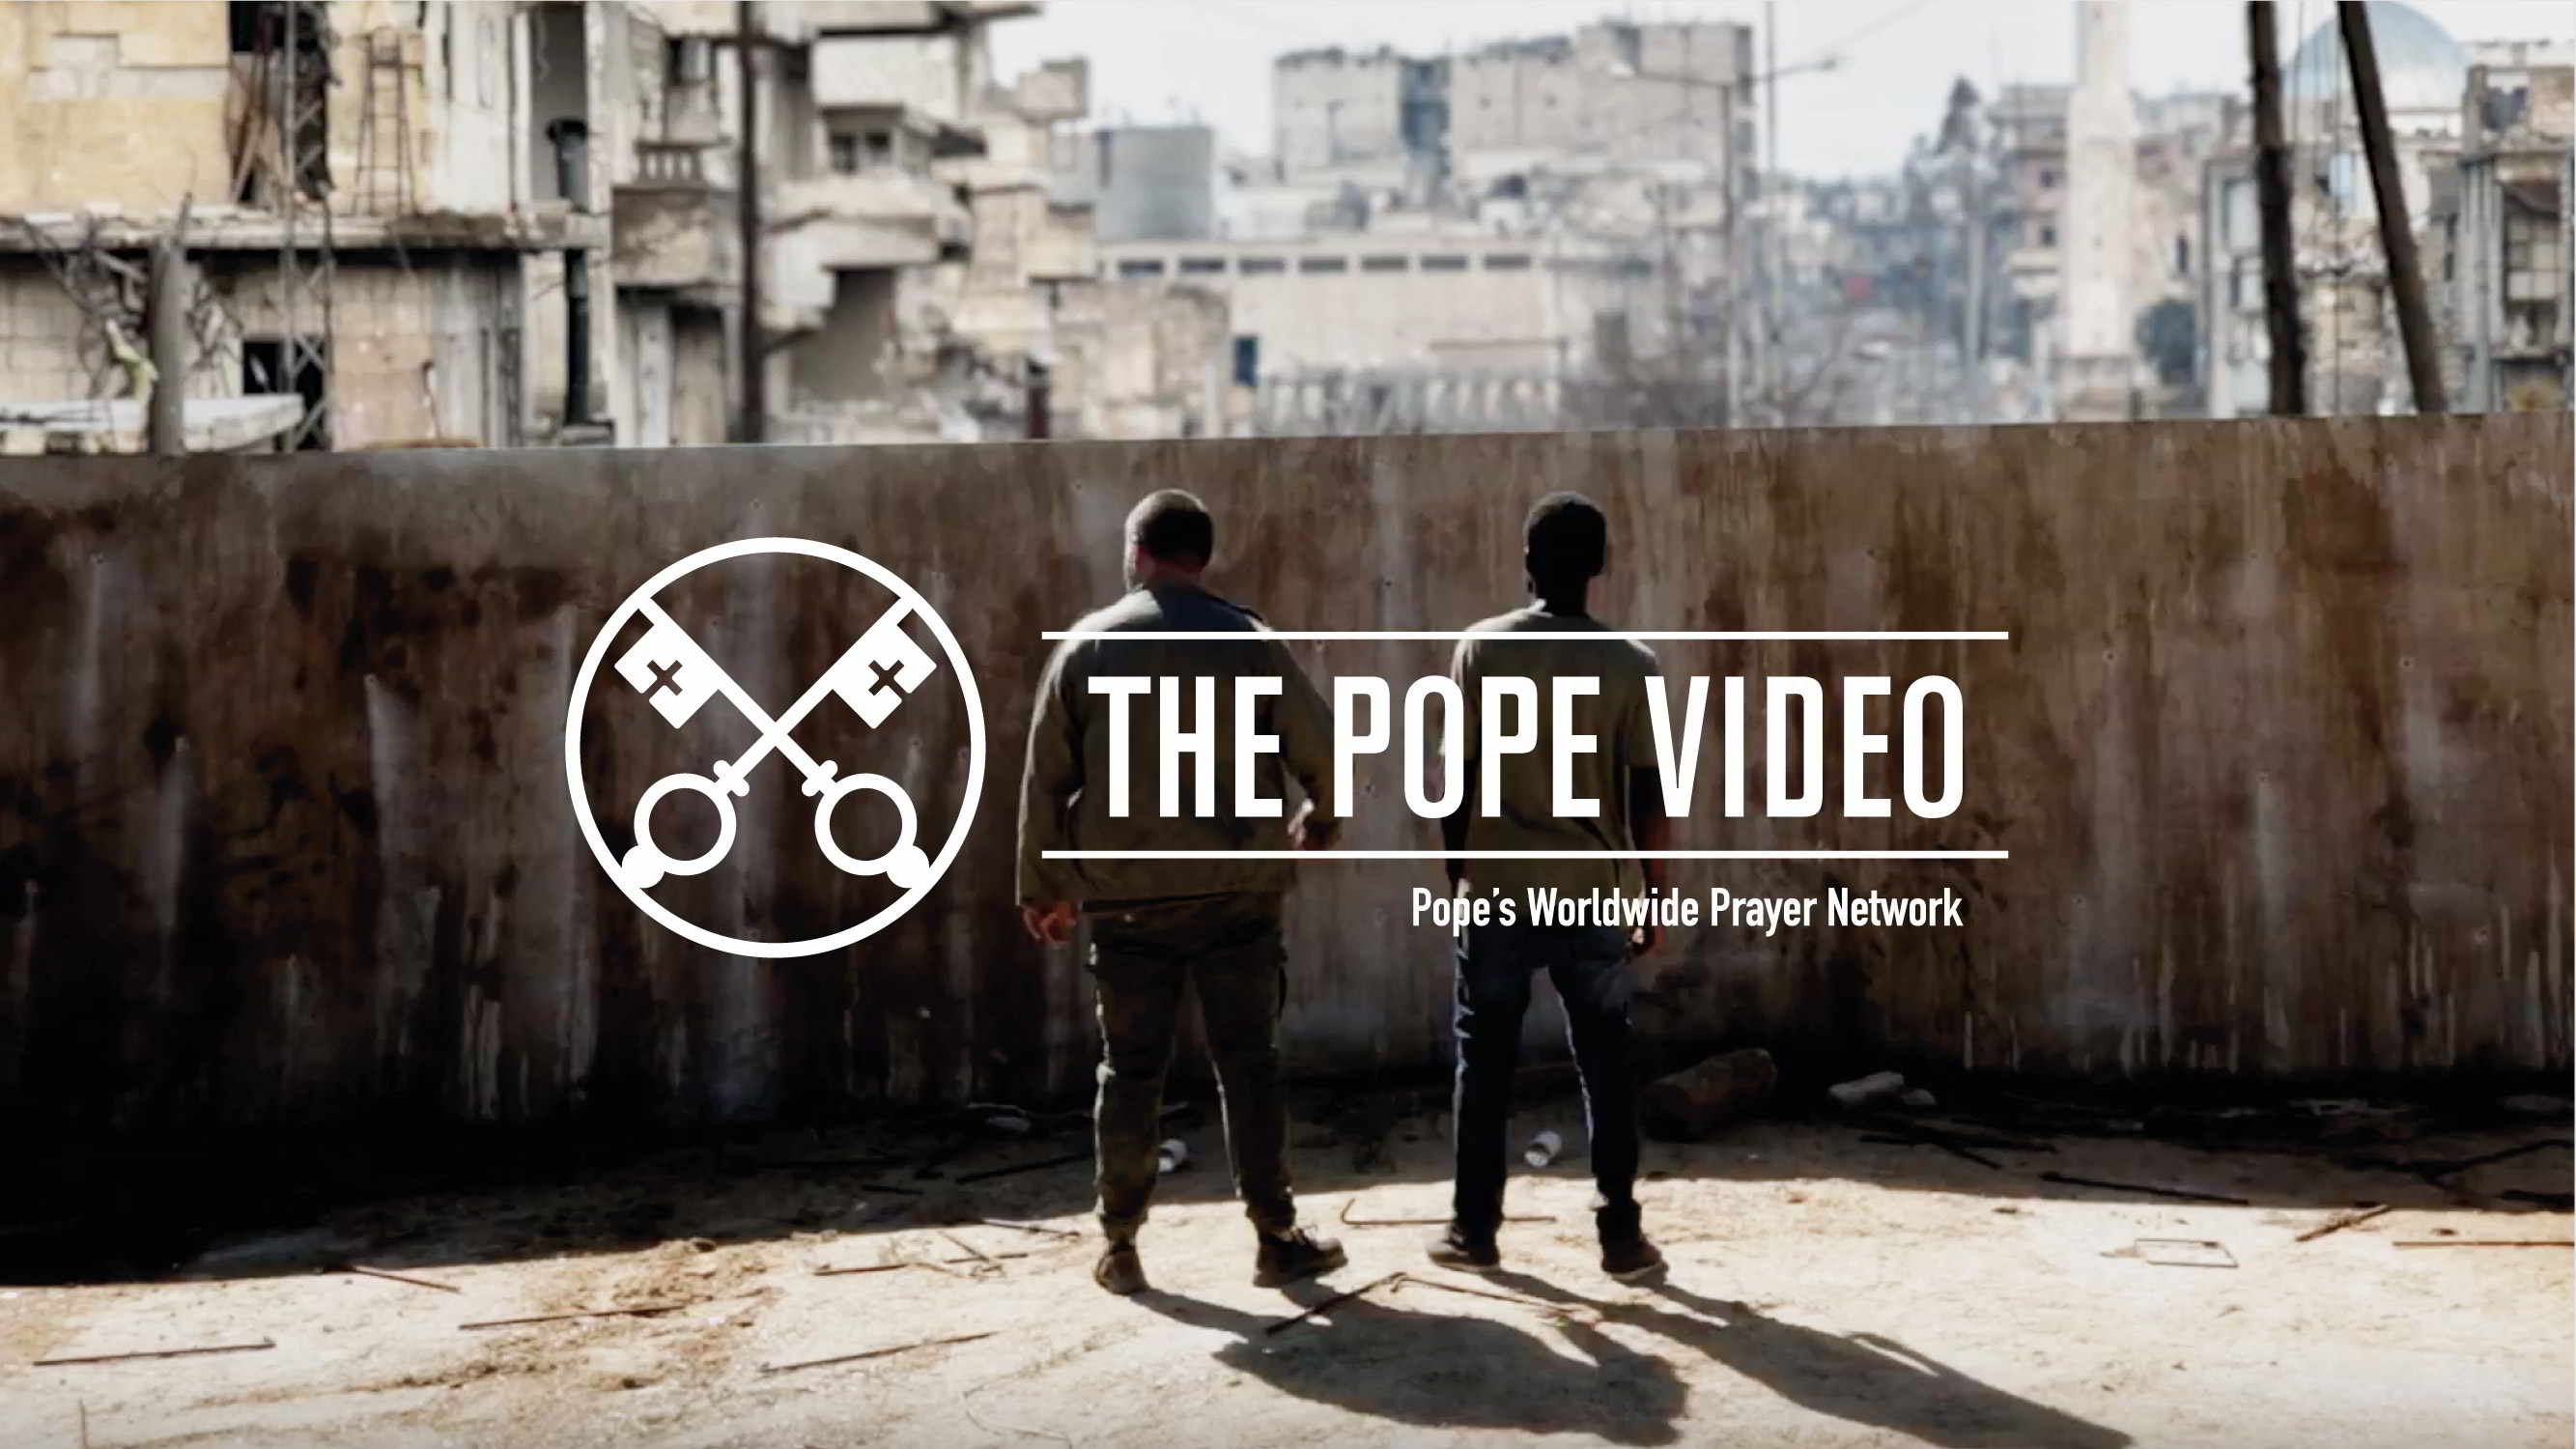 Youtube-Image-The-Pope-Video-11-2018-In-the-Service-of-Peace-1-English